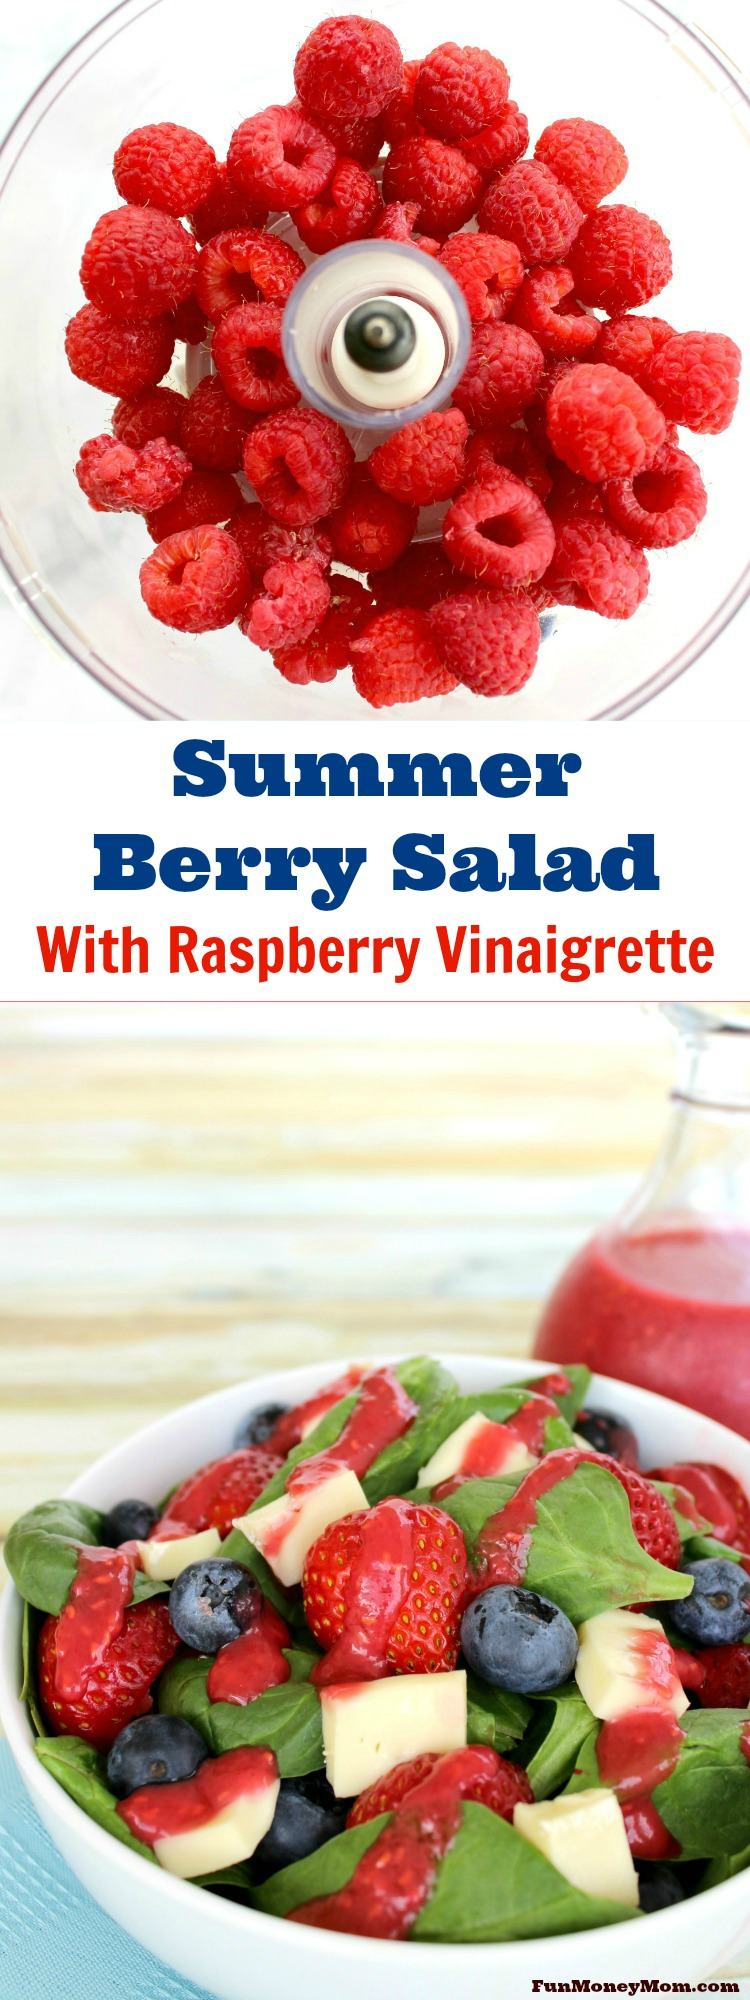 Need dinner in a hurry? Pair a delicious Freschetta pizza with this Summer Berry Salad topped with Fresh Raspberry Vinaigrette! You'll love that it's quick & easy and your family will love that it's so good! #FreschEats #ad